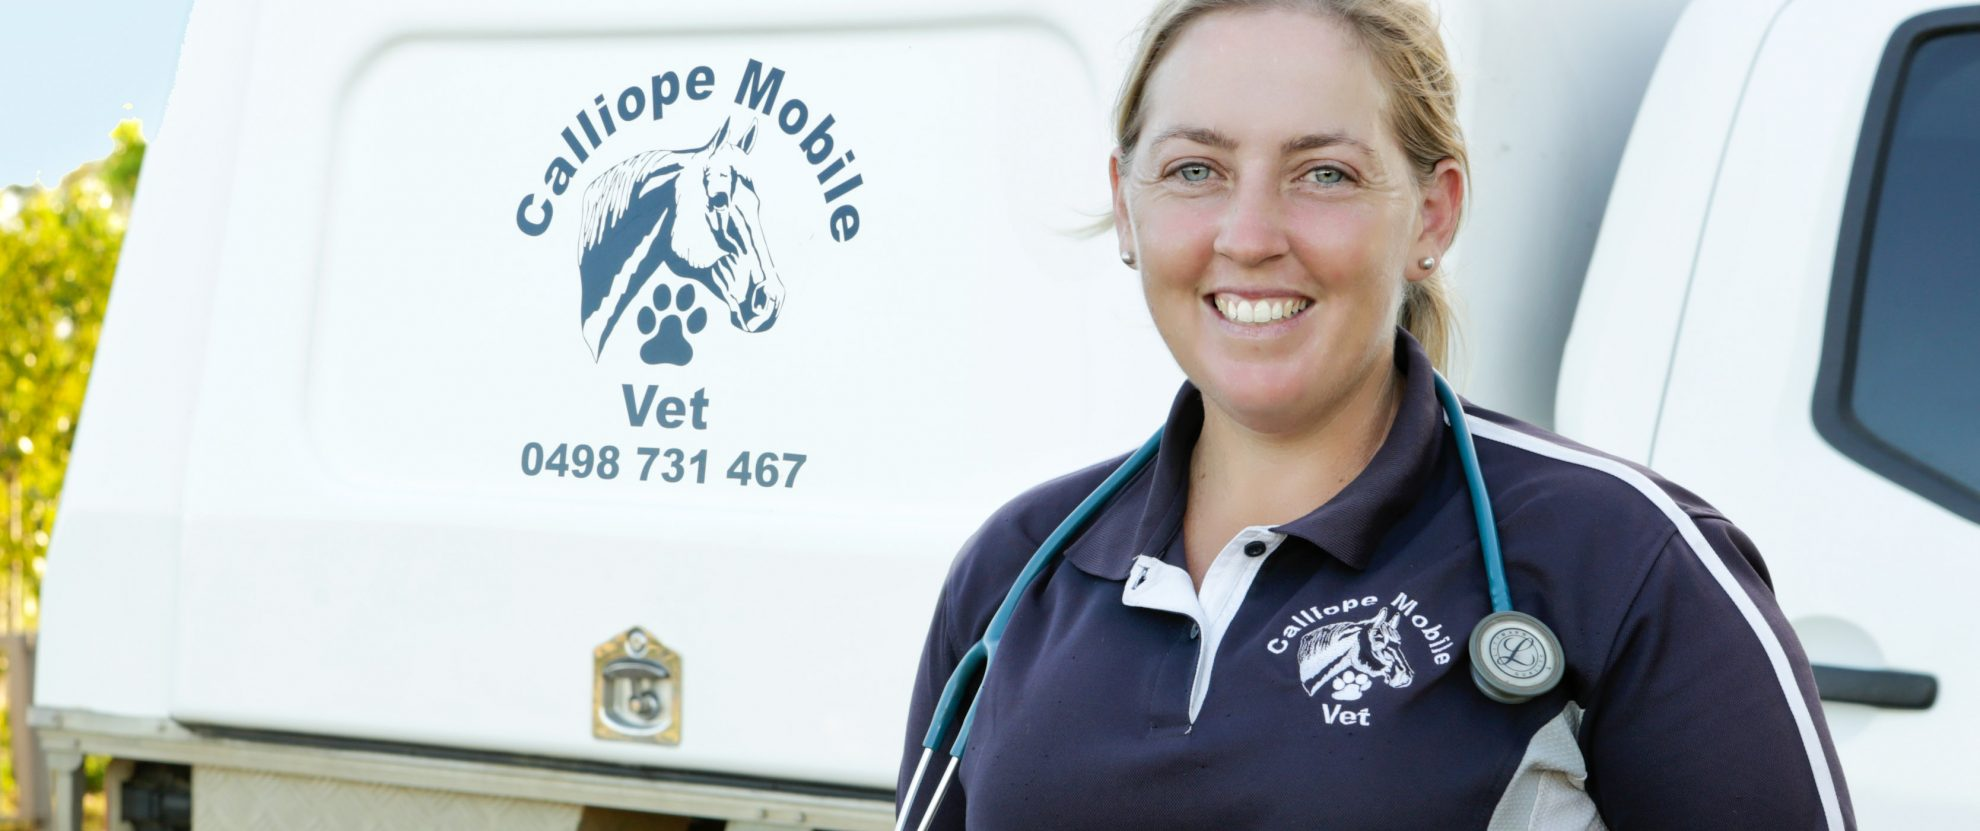 Our mobile service provides professional and friendly vet care that tends to the needs of all animals, big or small.